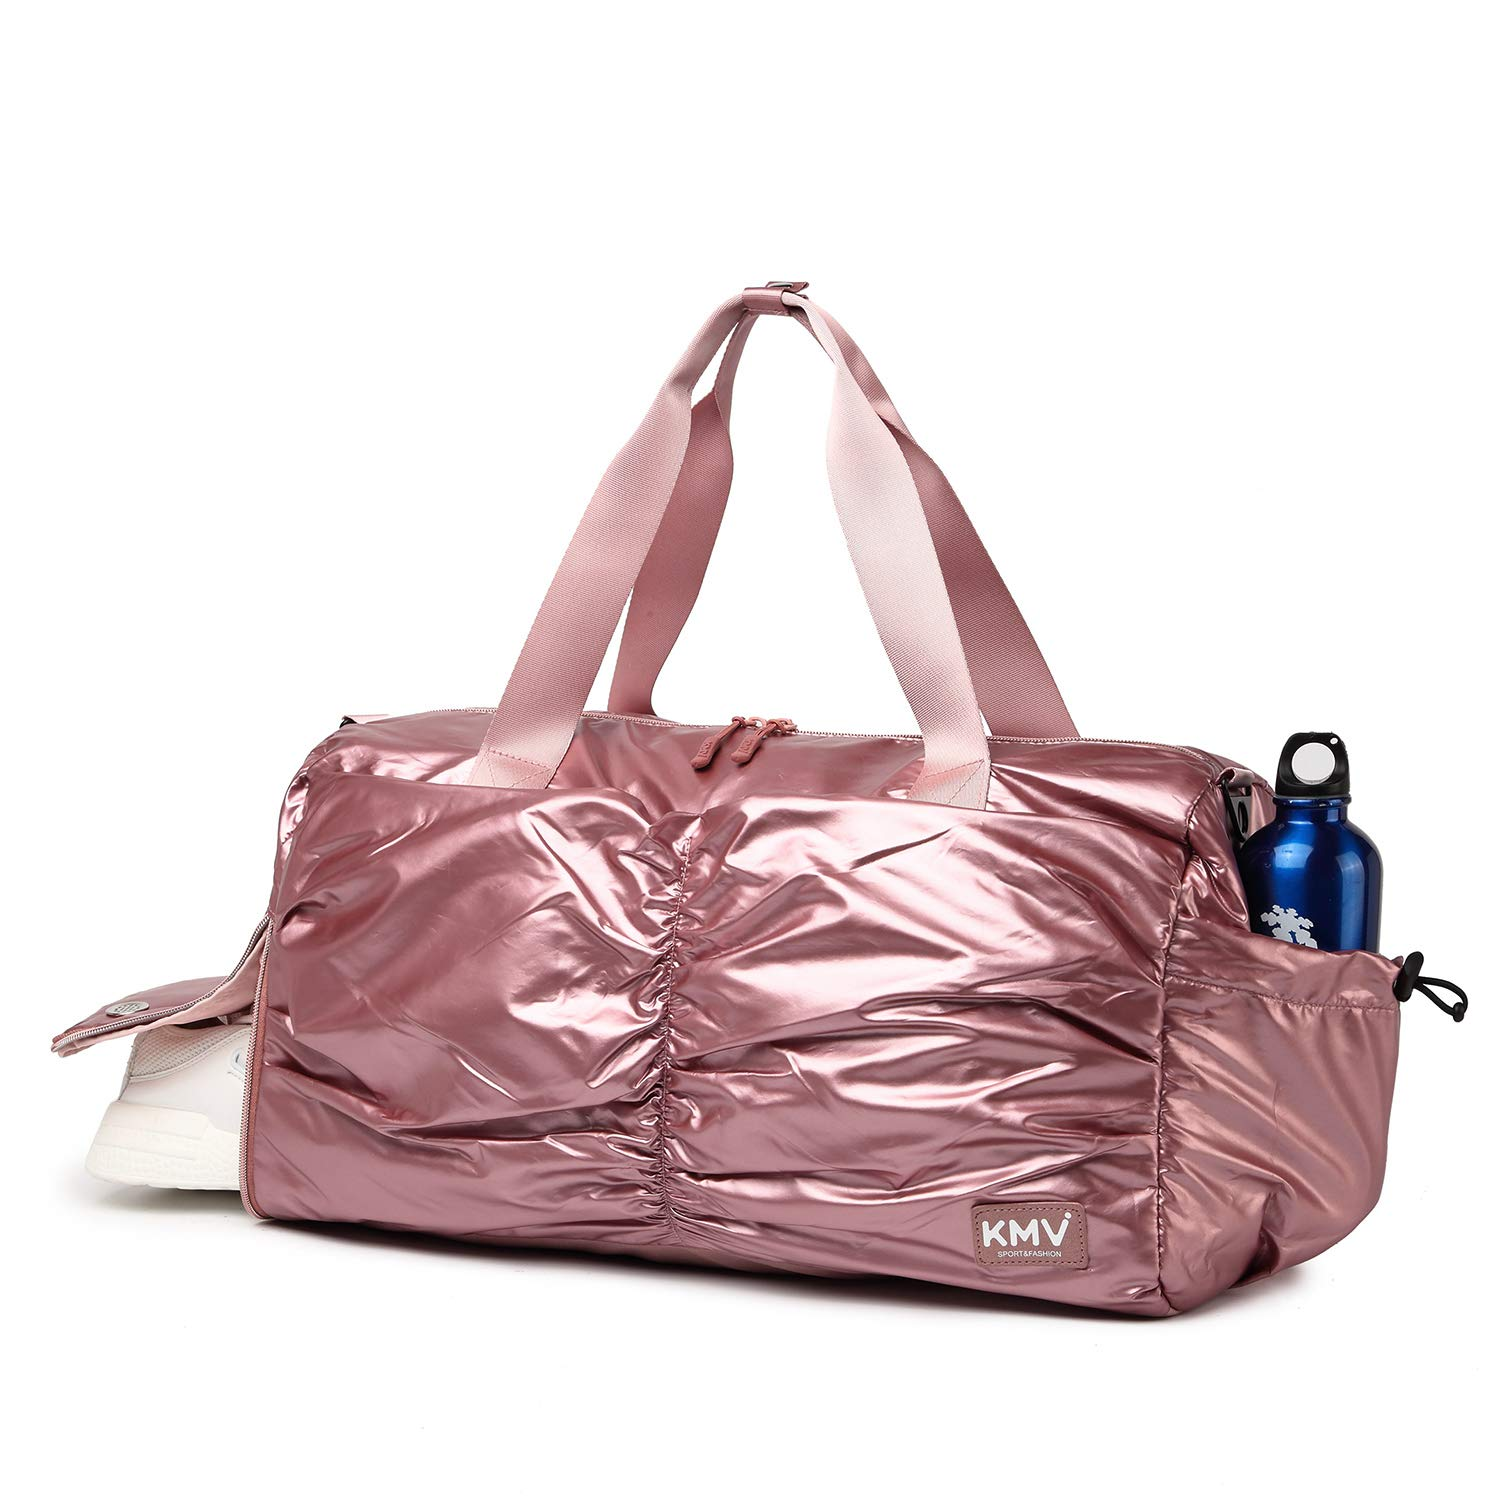 Metallic Women Stylish Gym Duffle Bag School,Ballet Dance Bag for Girls with Shoe Compartment and Wet Pocket Rose Gold